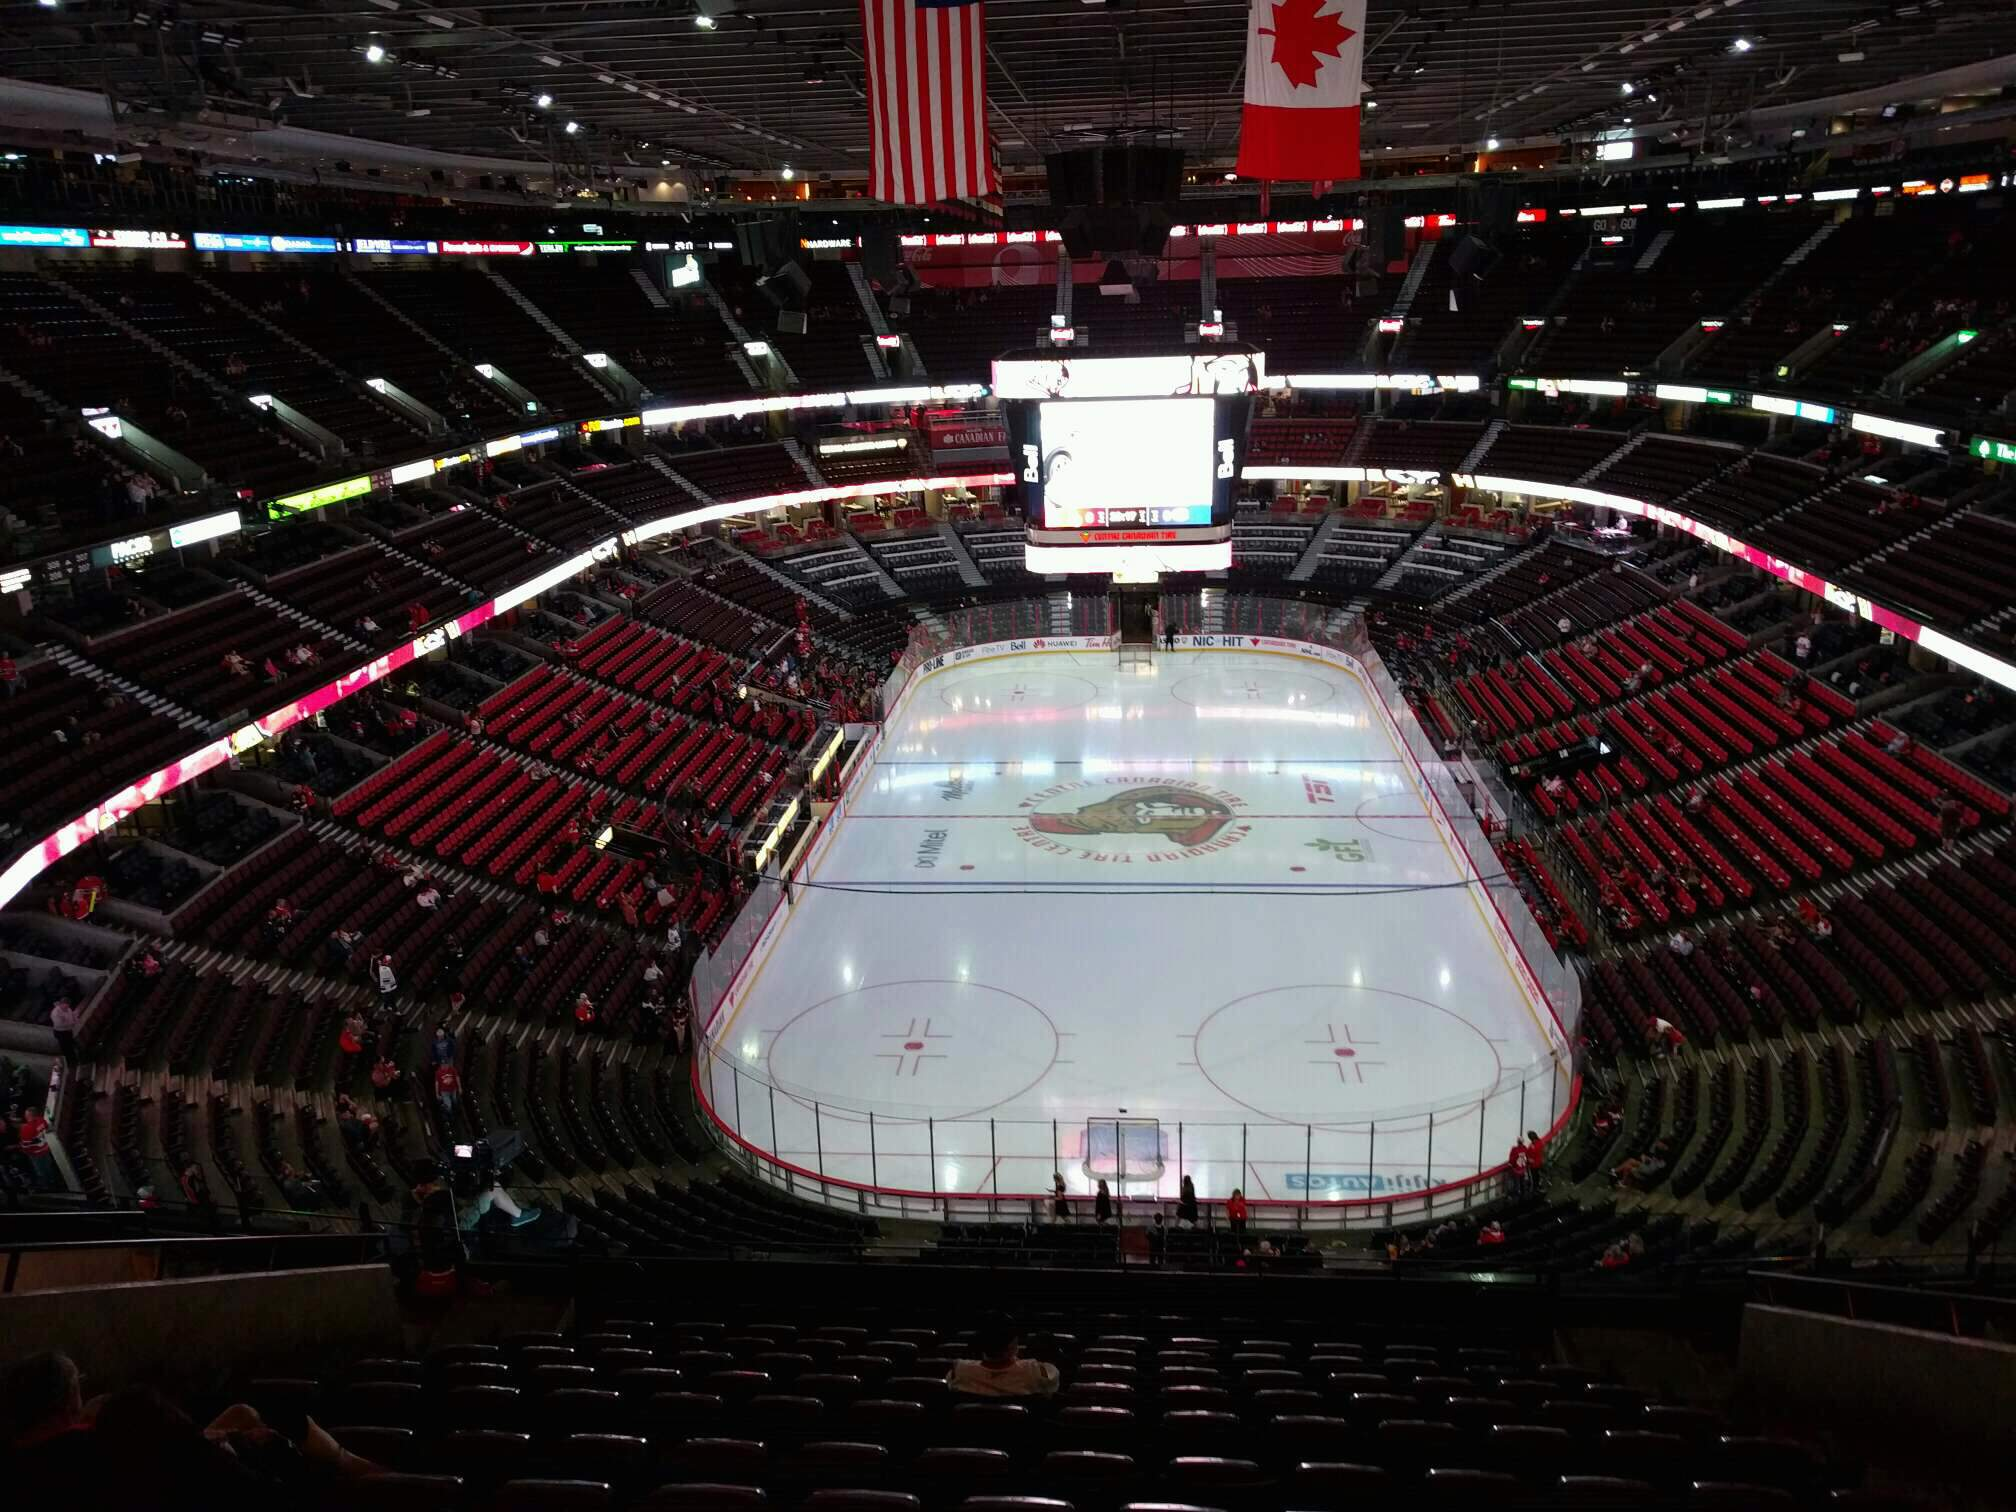 Canadian Tire Centre Section 301 Row n Seat 9